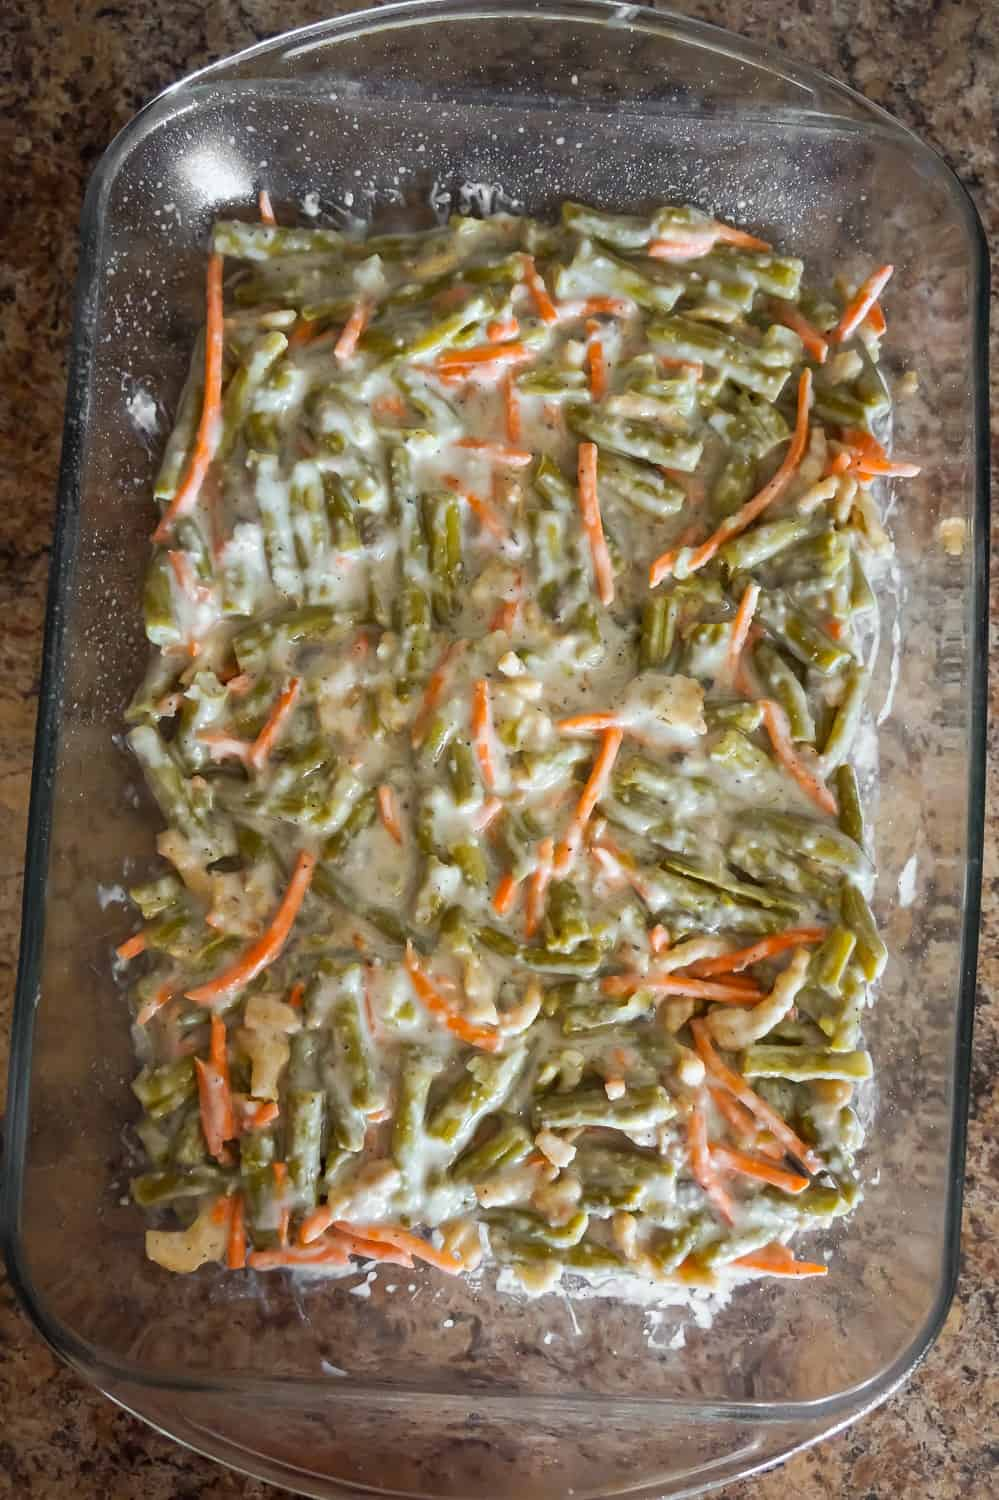 green bean casserole mixture in a baking dish